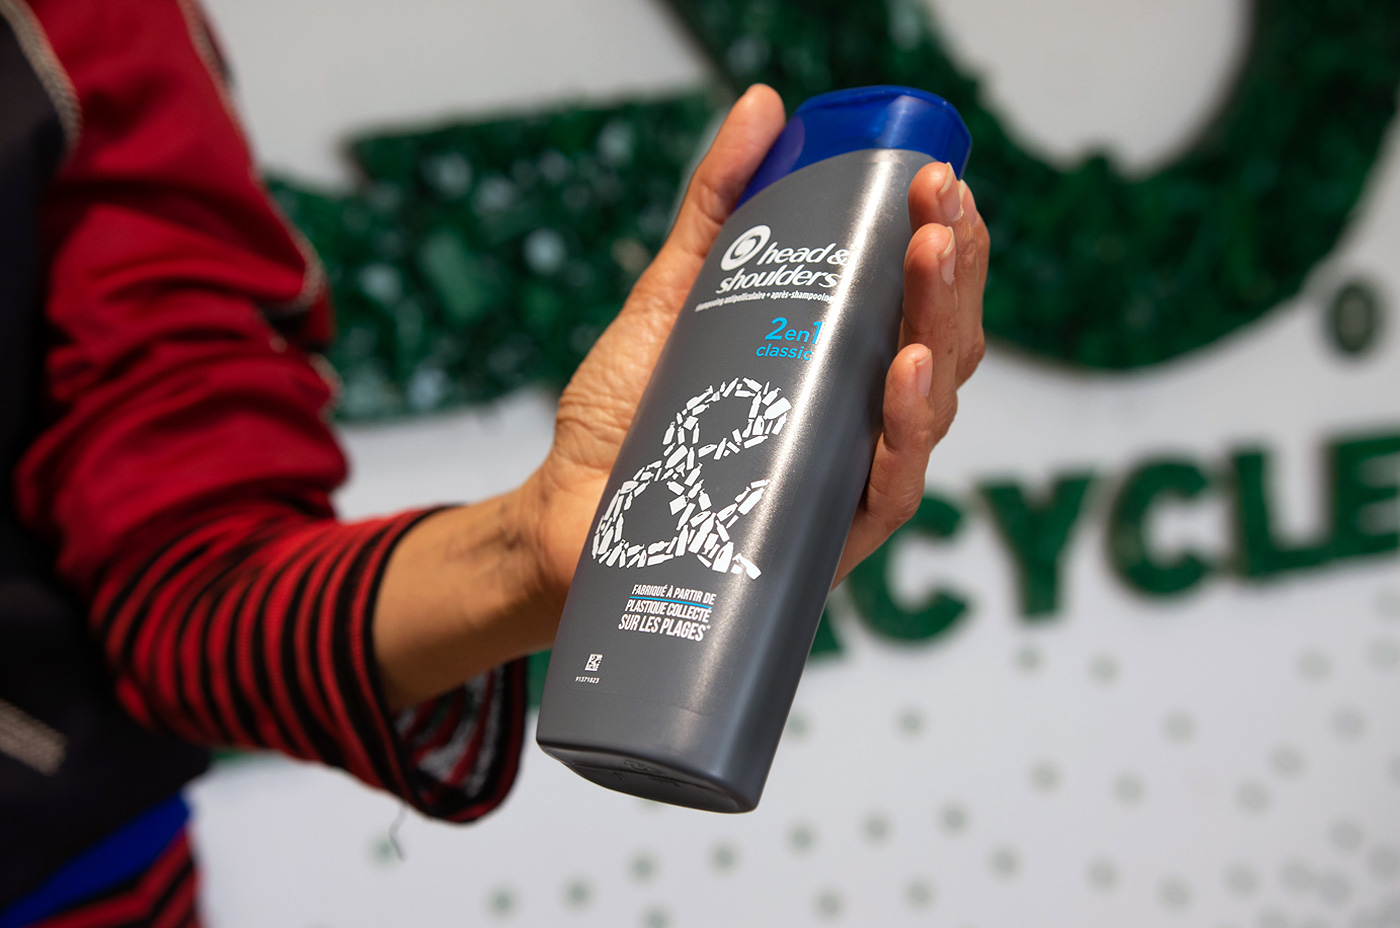 The award-winning TerraCycle Head & Shoulders packaging for the European market made with recycled beach plastic.